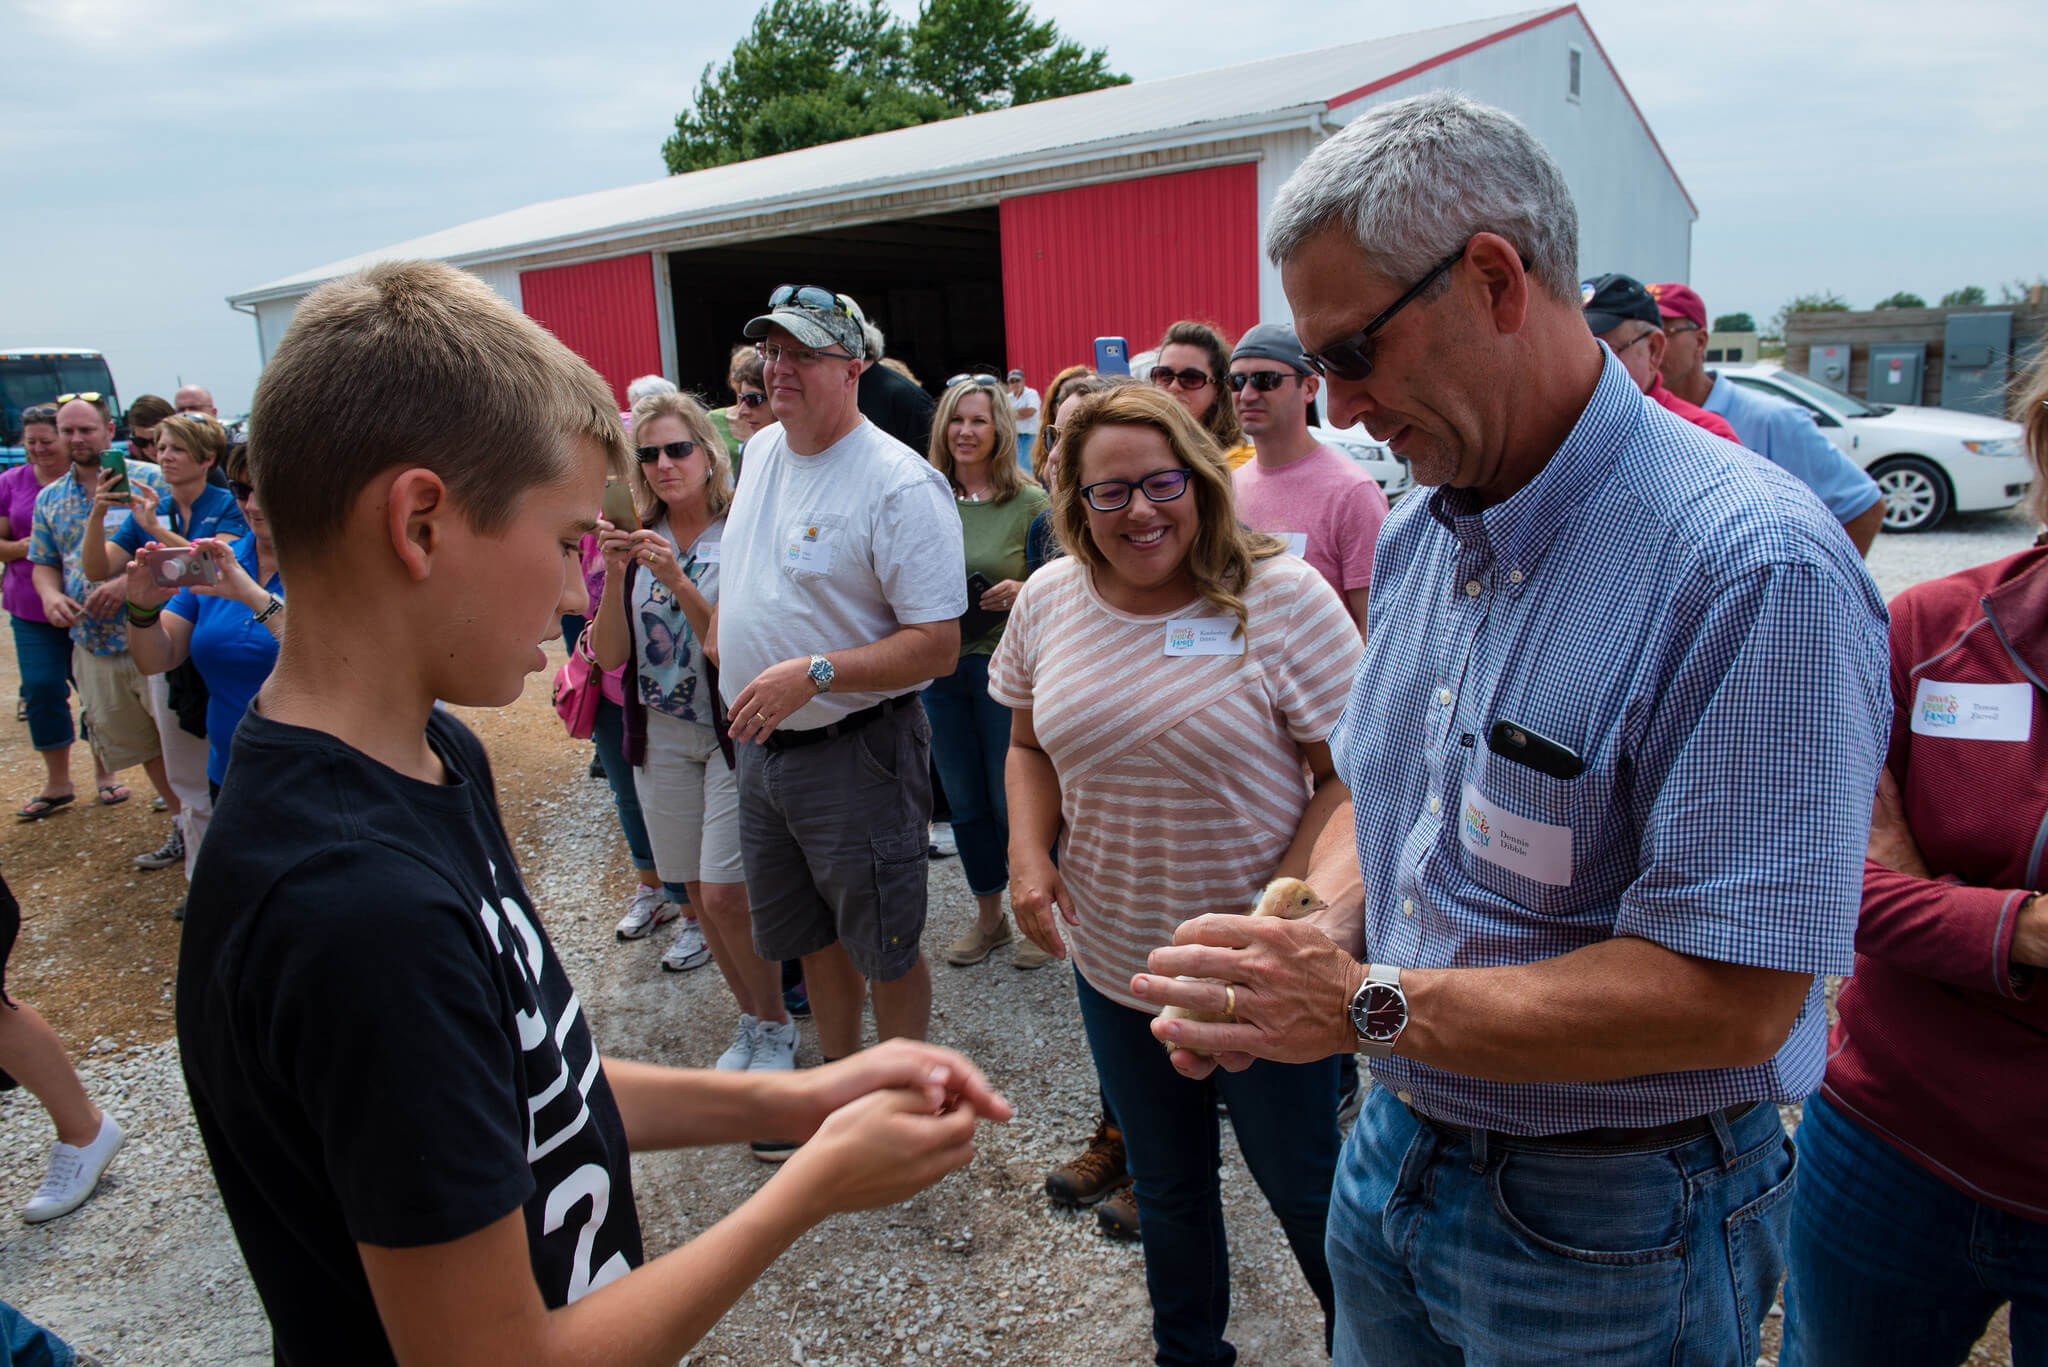 The Graber family welcomes 40 Iowans to their farm, showing off turkey chicks during Expedition Farm Country 2017.